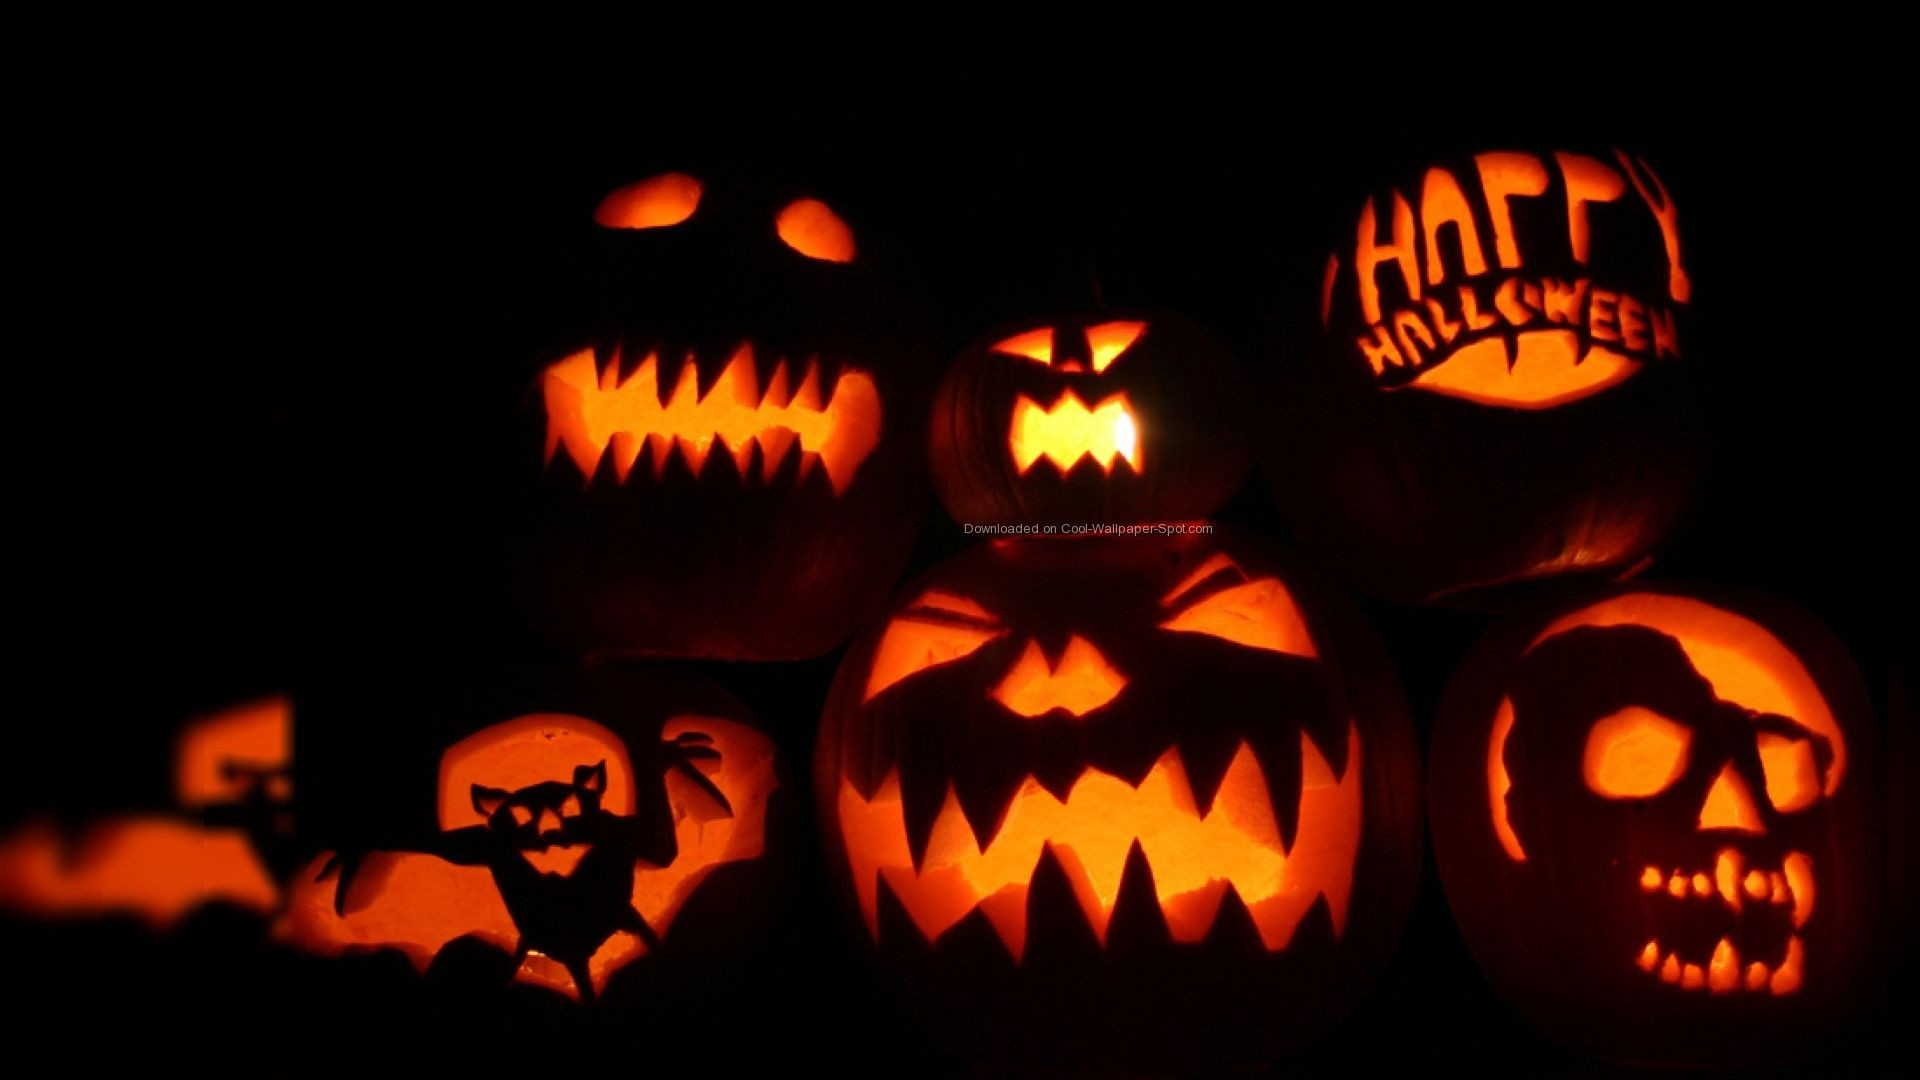 download free cute halloween wallpaper 1920x1080 for 1080p 1920x1080 - Halloween Wallpaper Download